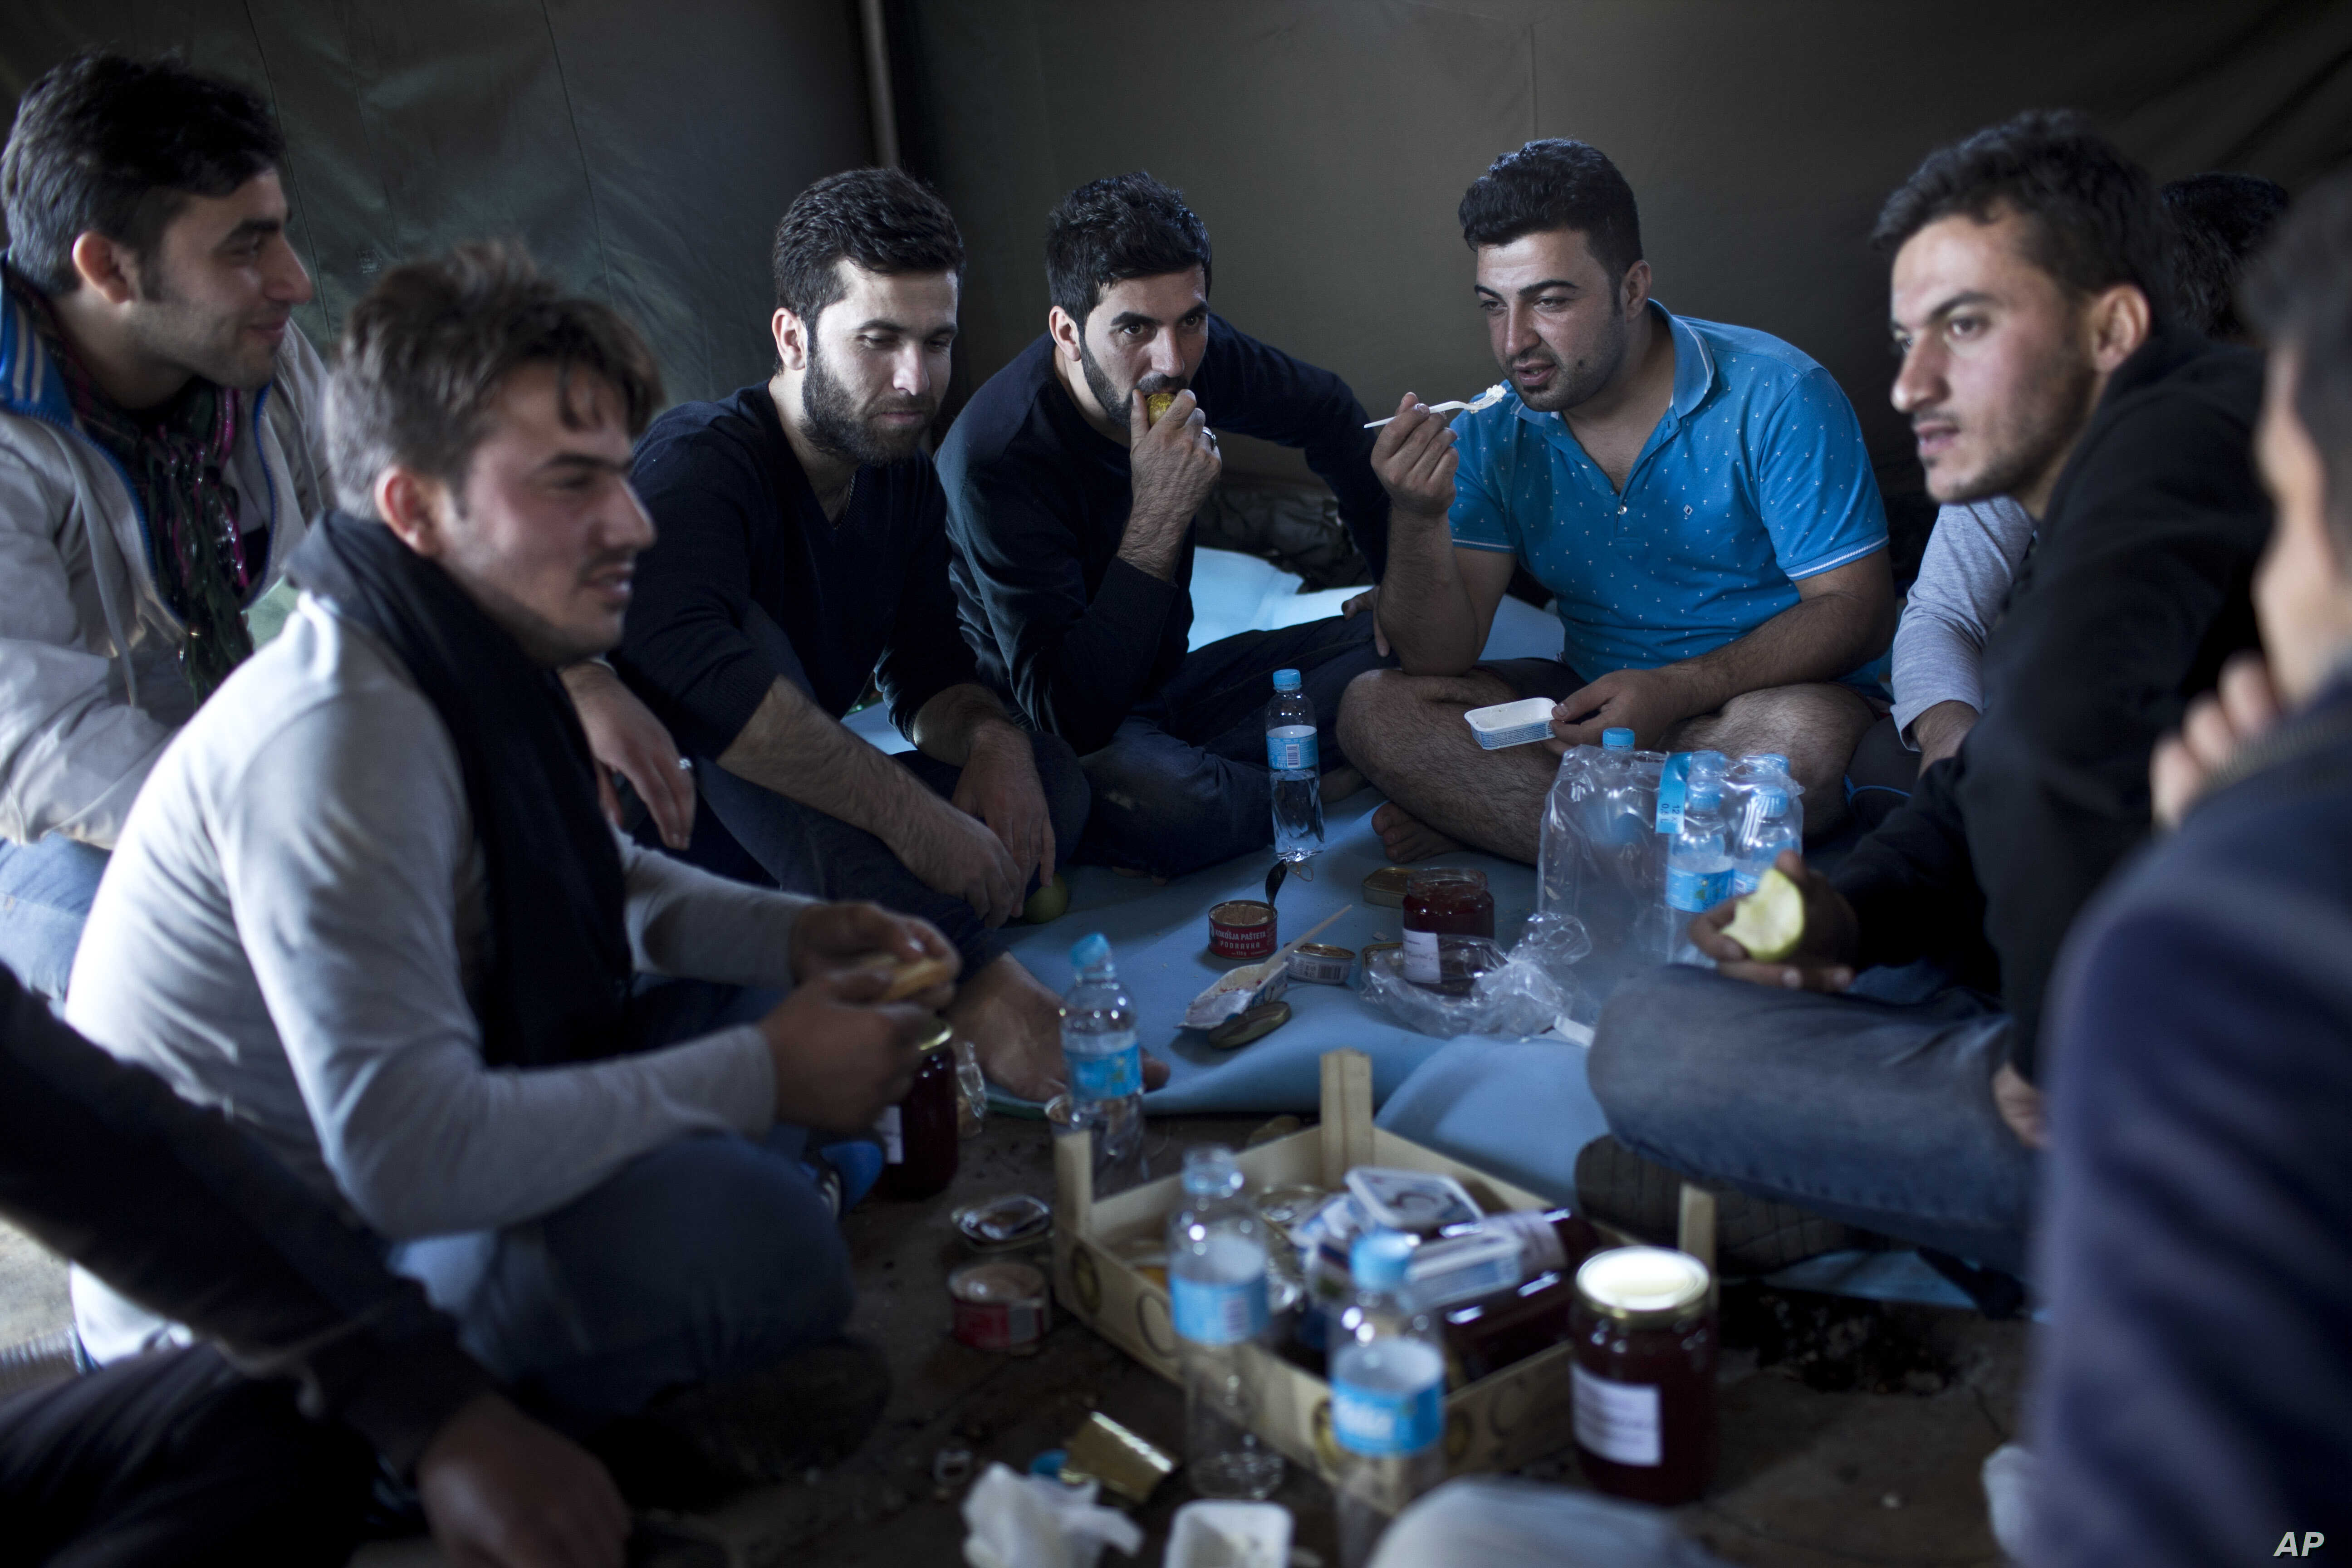 People eat a meal inside a tent at a newly established reception center for migrants and refugees close to Croatia's border with Serbia, in the town of Opatovac, Croatia, Sept. 21, 2015.